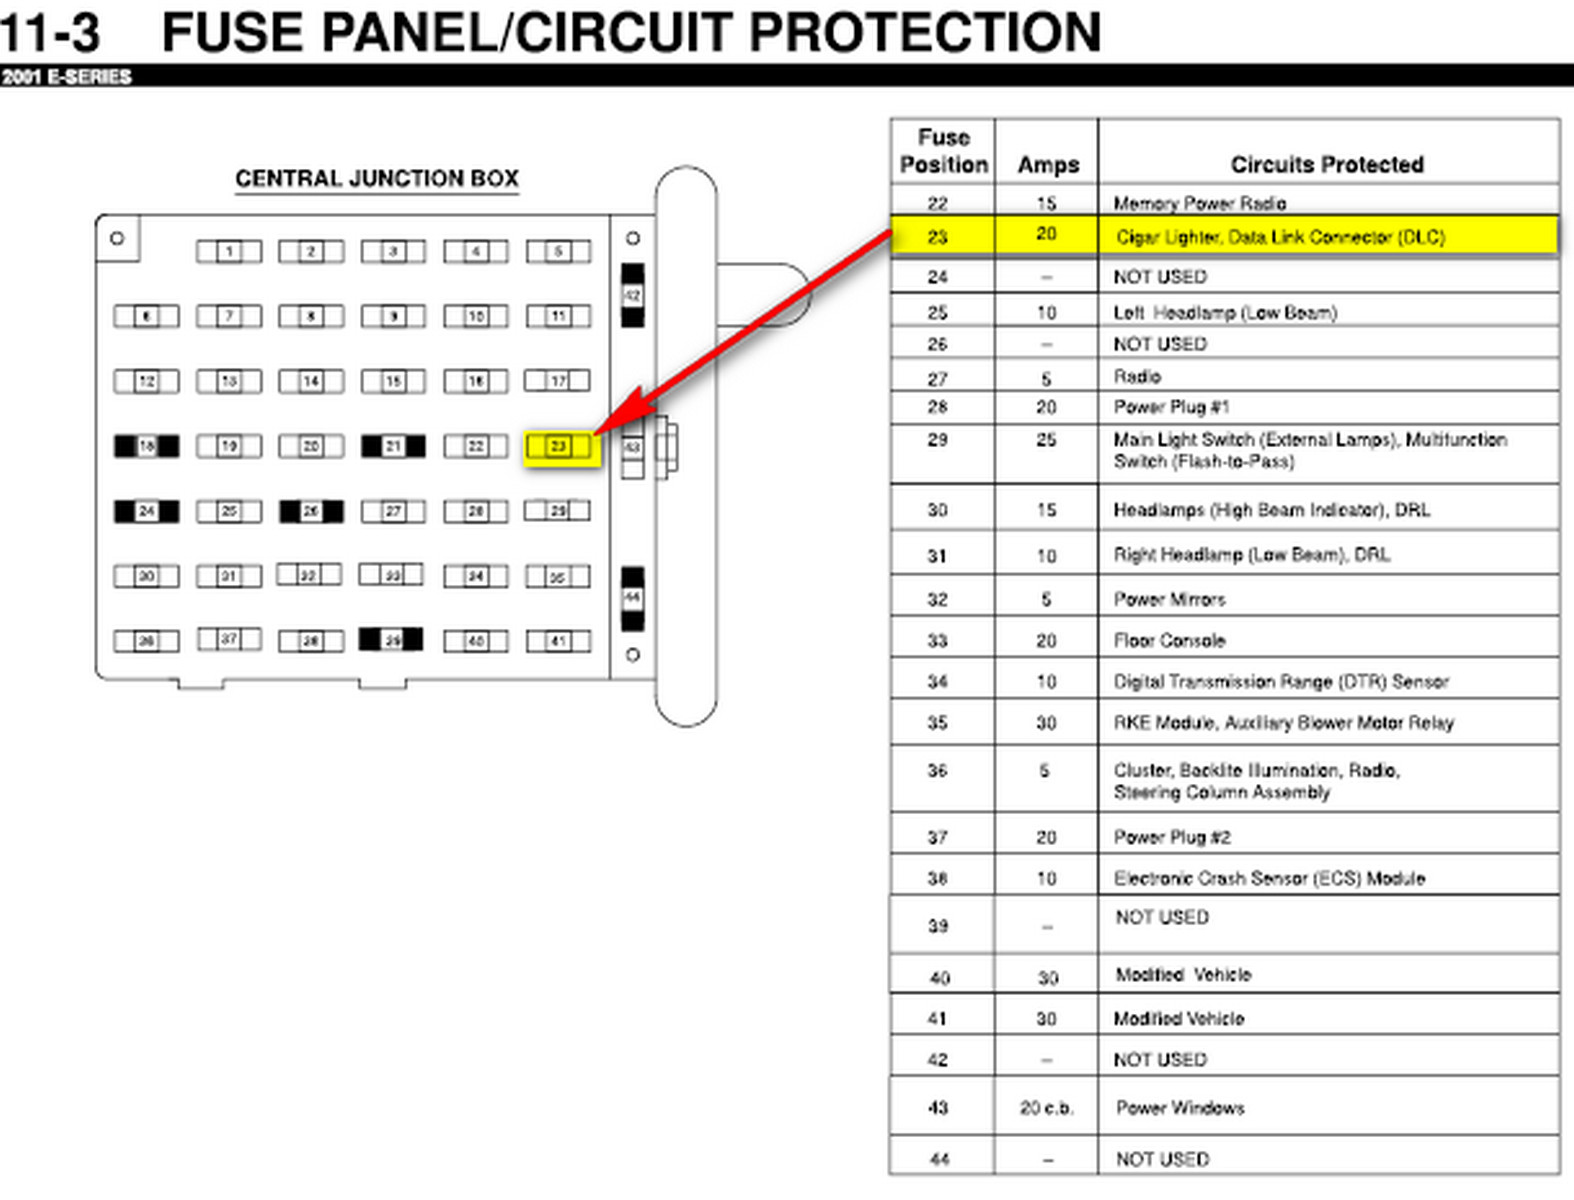 hight resolution of 2003 ford e350 fuse panel diagram wiring diagram sample 2003 ford e350 7 3 fuse box diagram